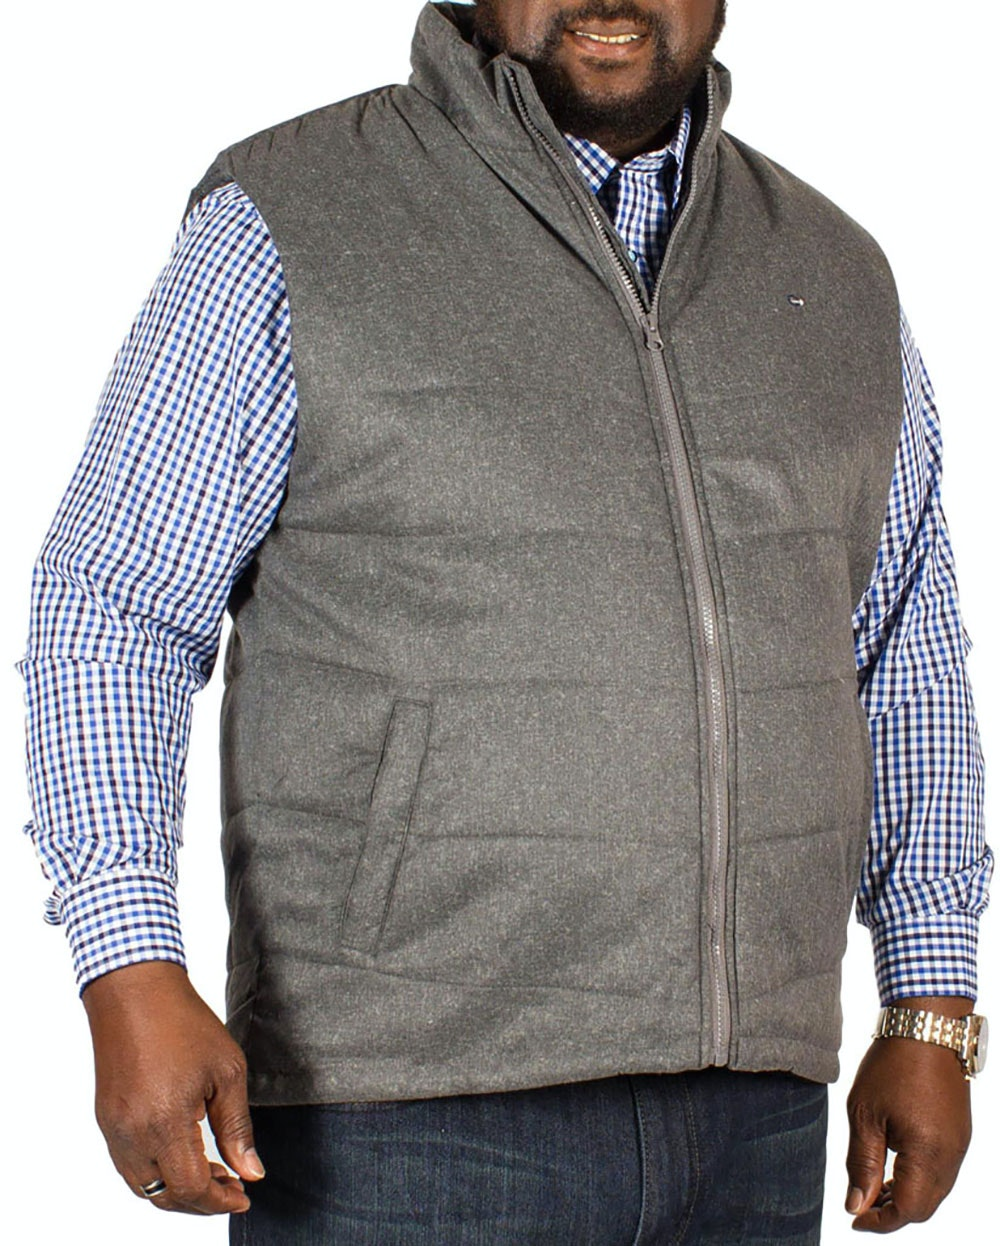 Peter Gribby Chevron Quilted Gilet Grey